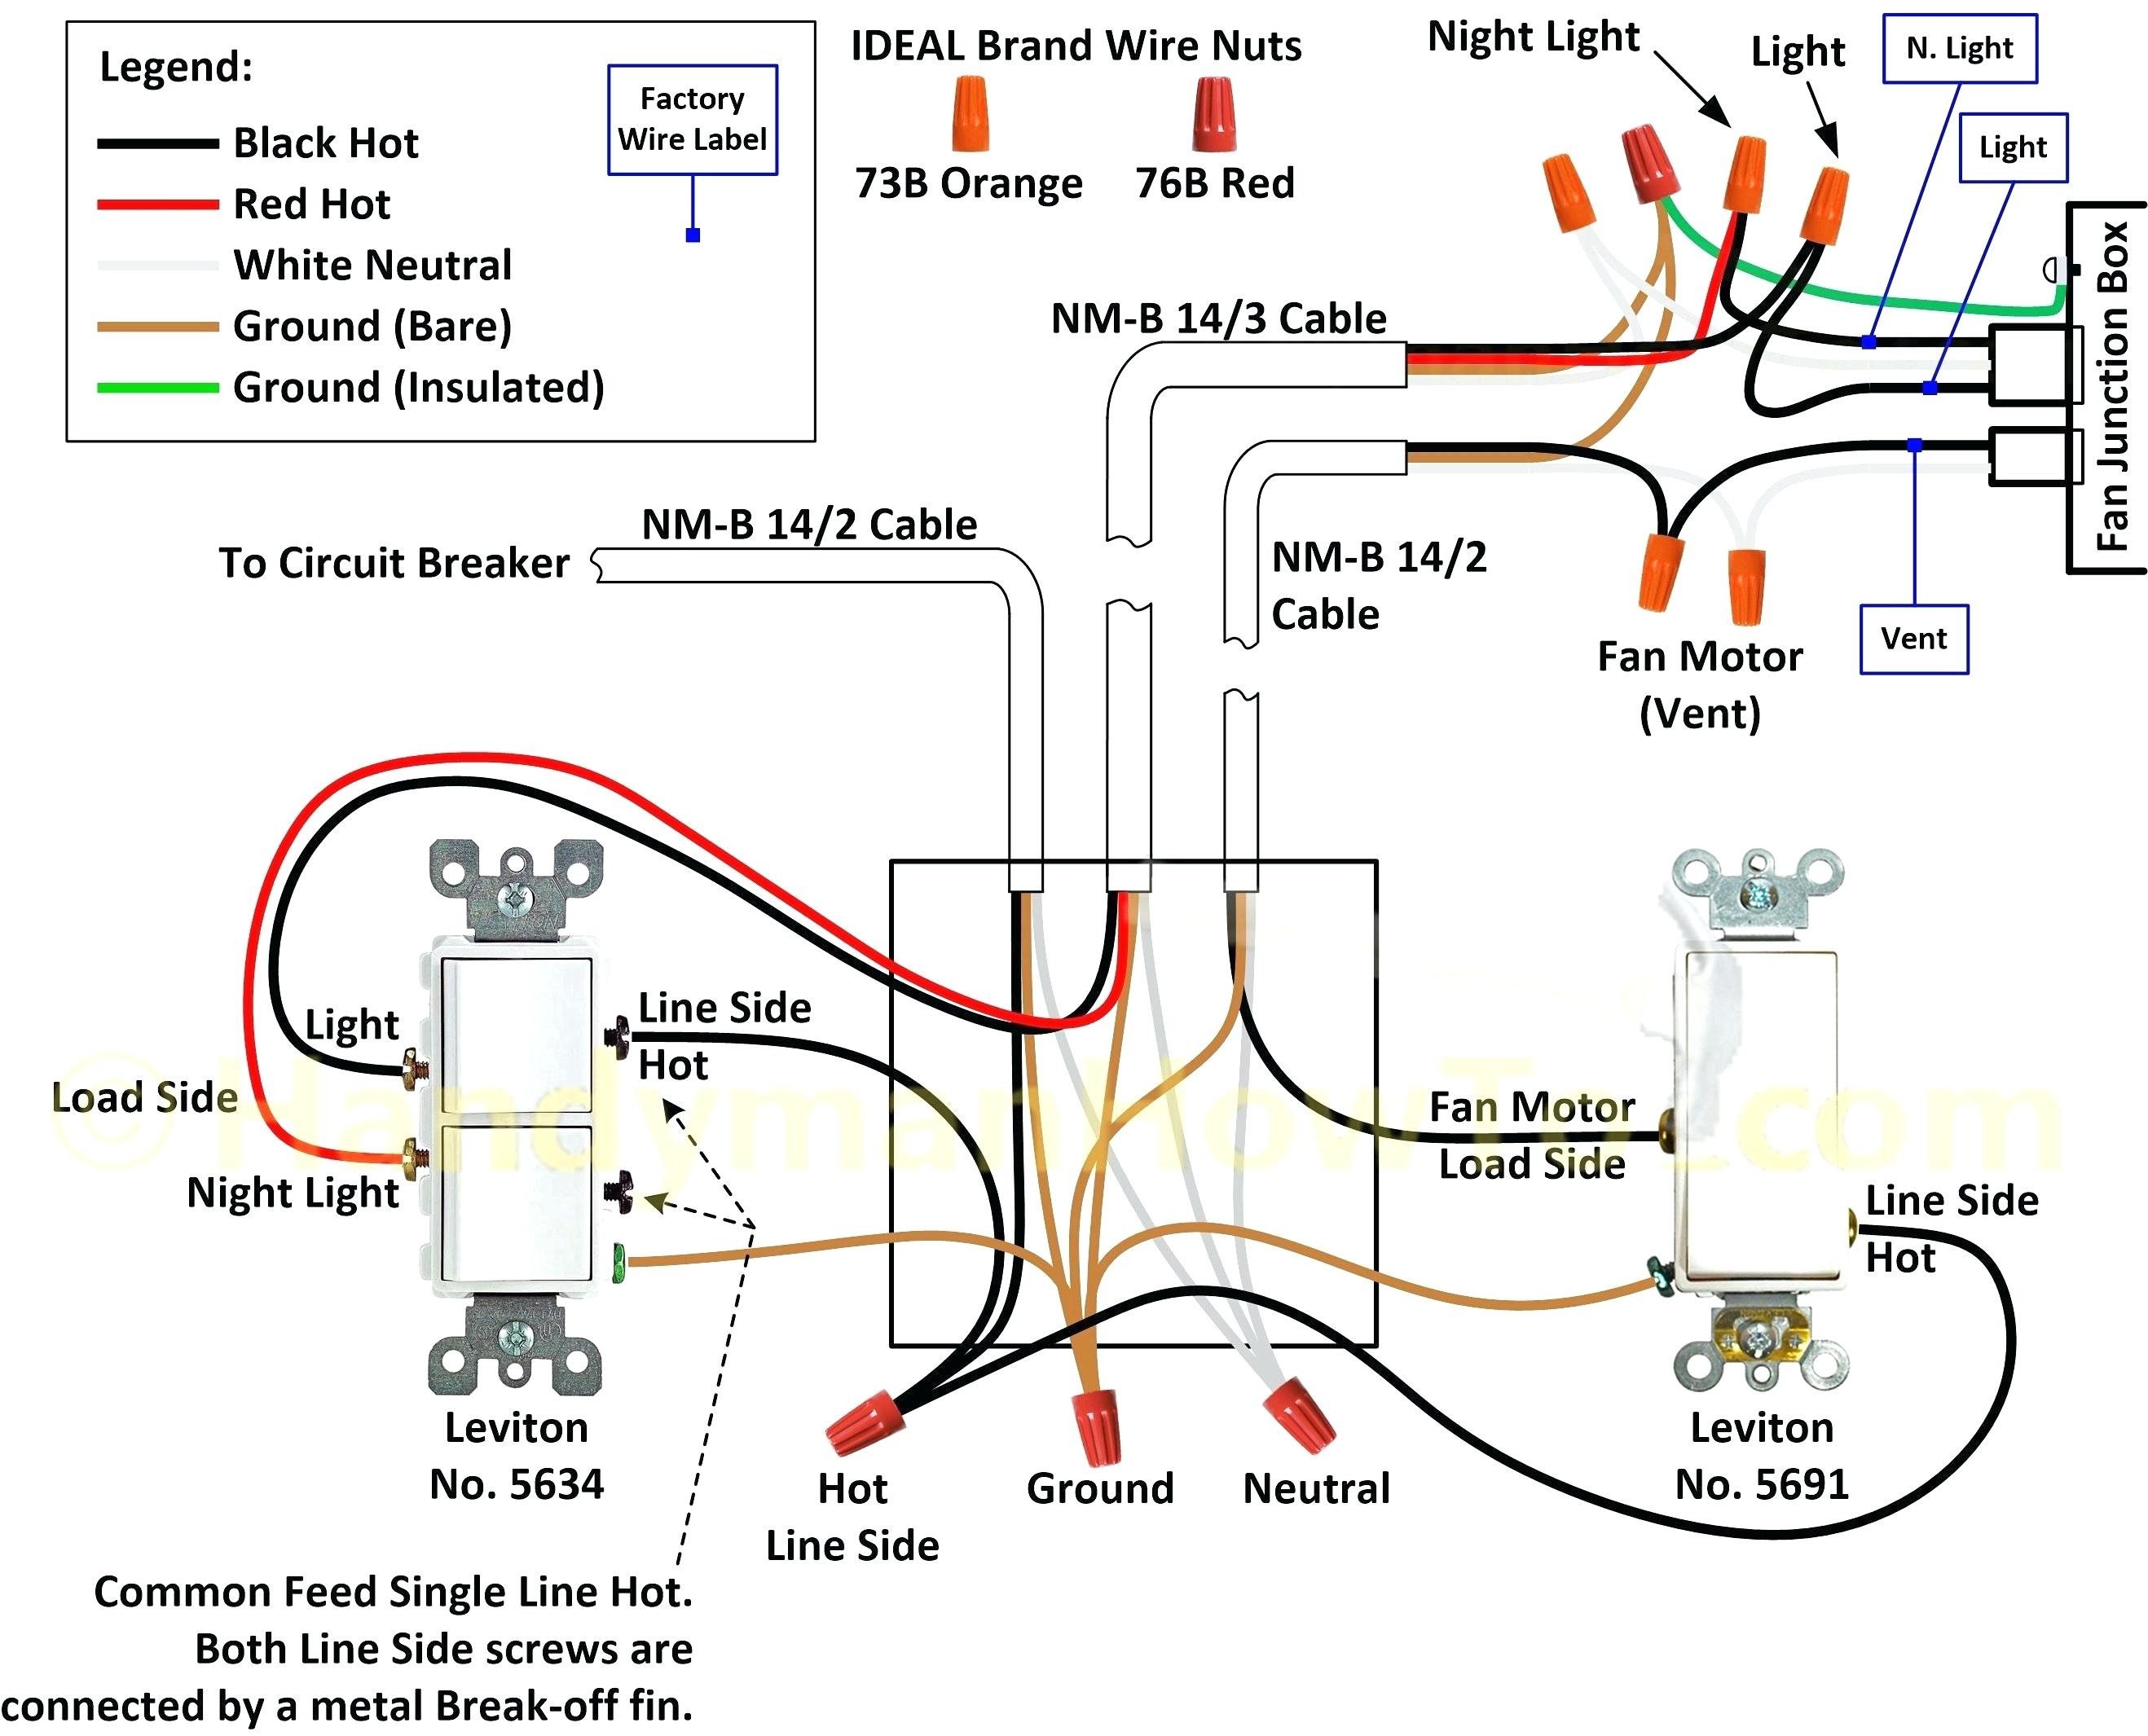 LE 40] Wiring Diagram For Multiple Lights And Switches Download ...